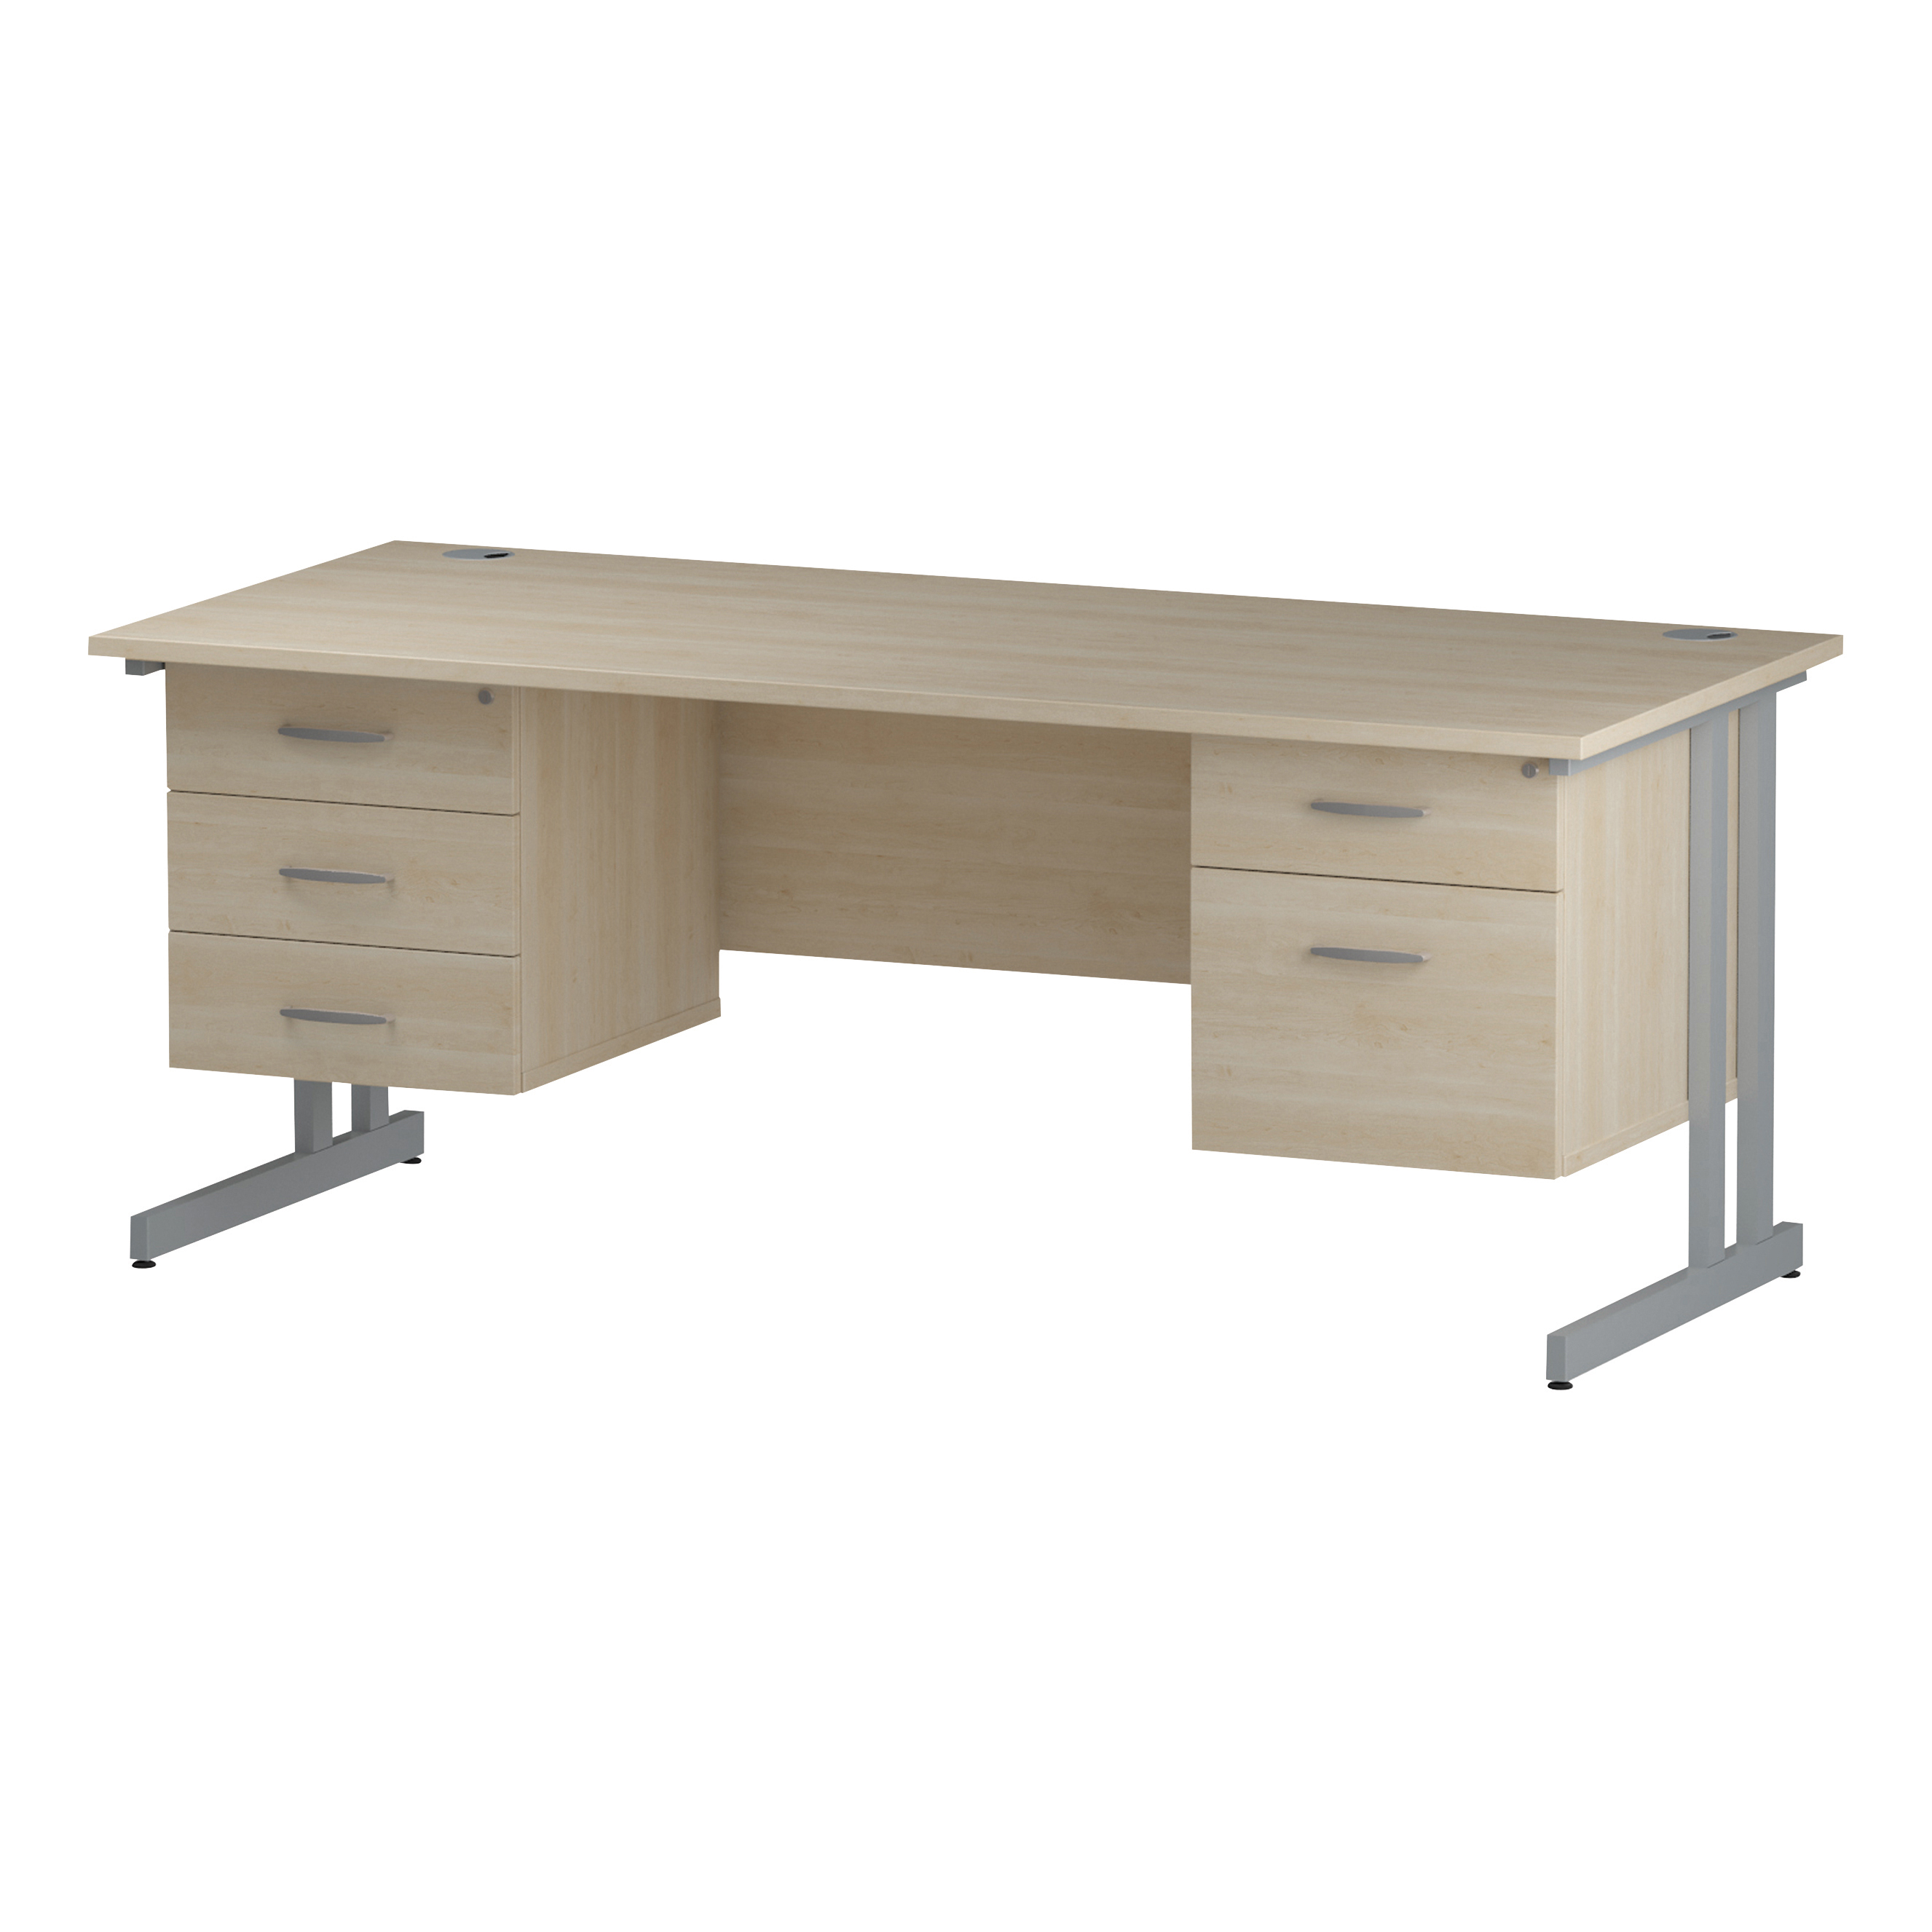 Trexus Rectangular Desk Silver Cantilever Leg 1800x800mm Double Fixed Ped 2&3 Drawers Maple Ref I002466